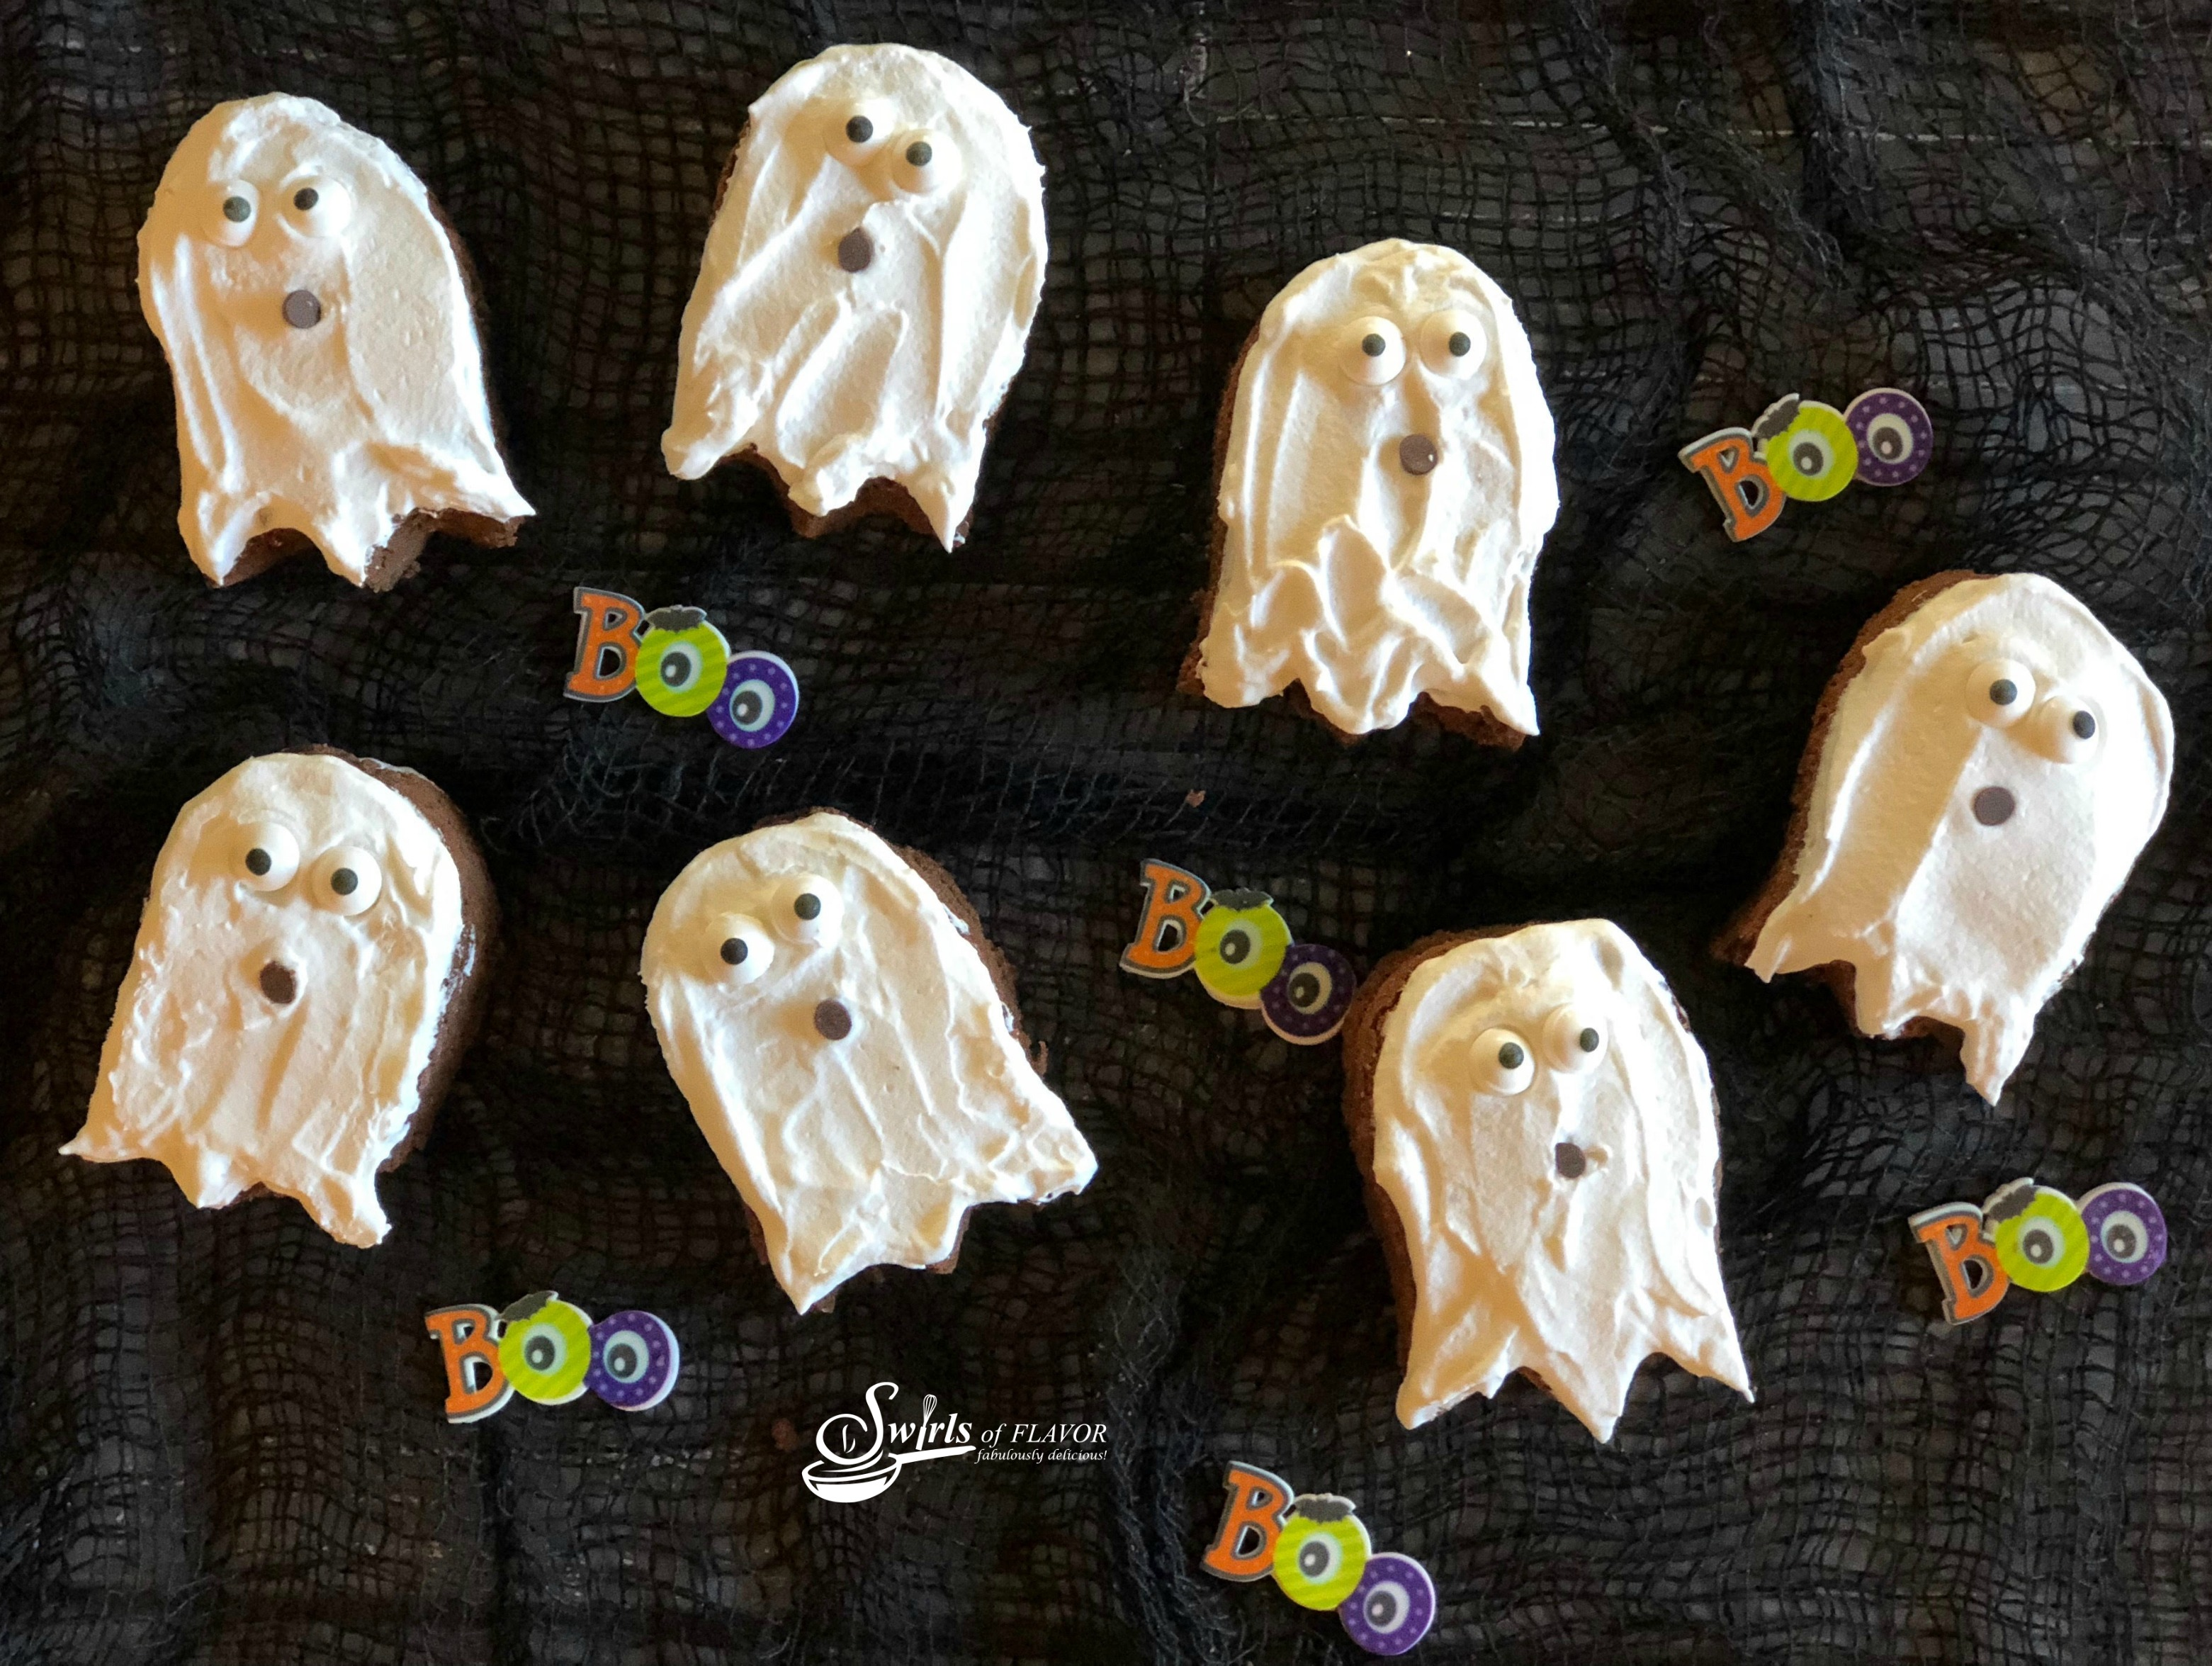 brownies shaped like ghosts with whipped topping and sugar eyes